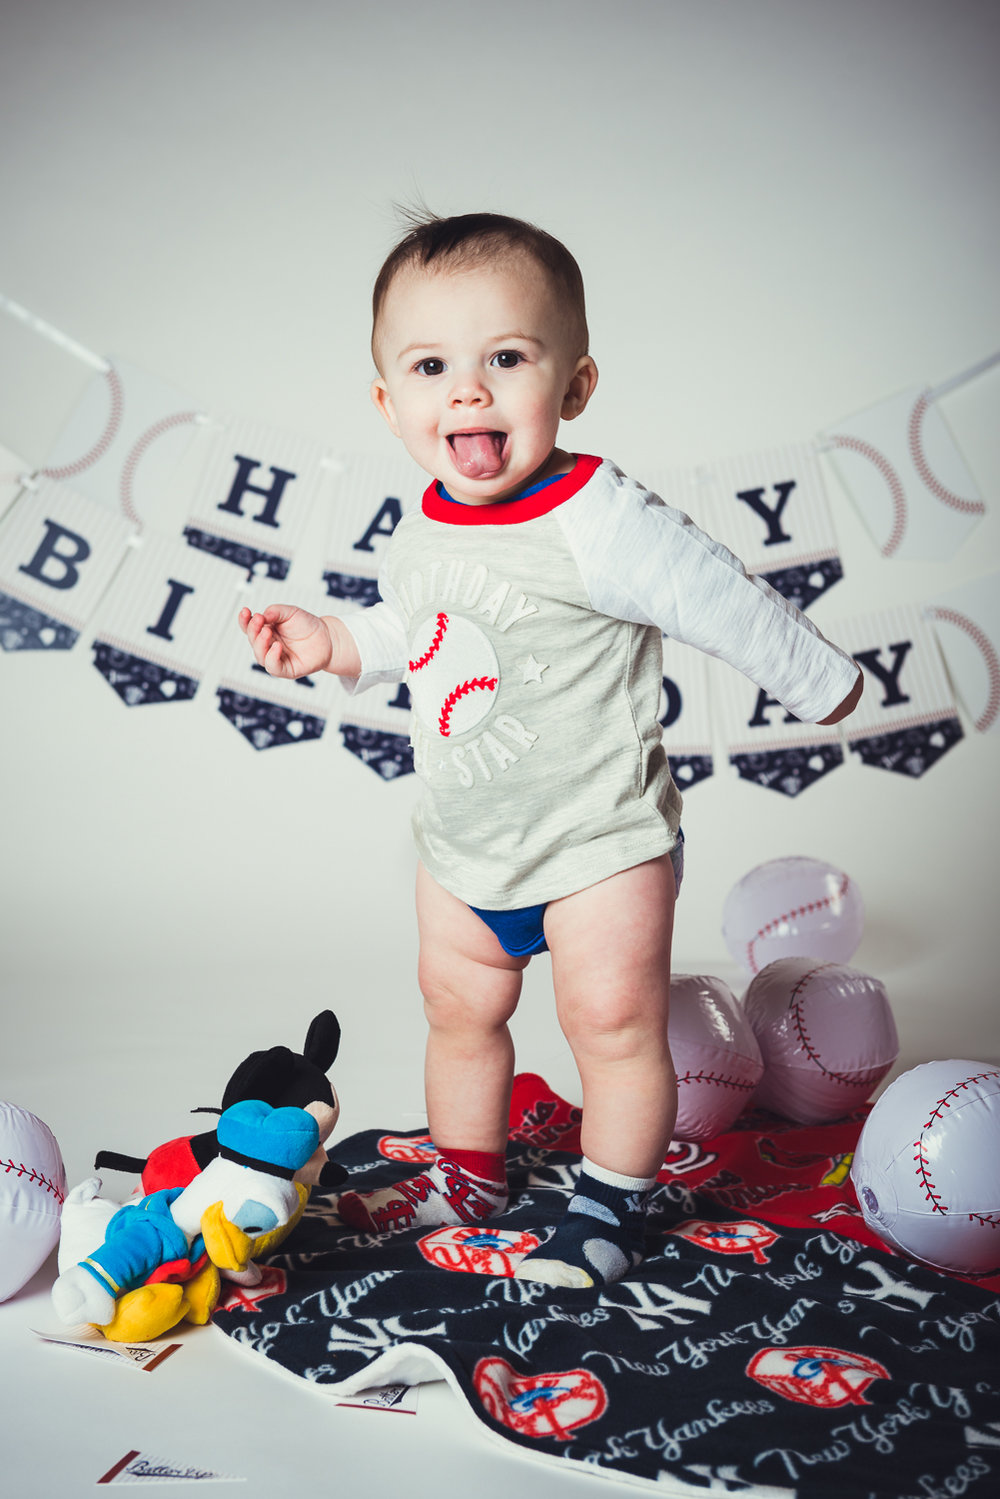 20171217 - Timmys First Bday Portraits LR-7.jpg